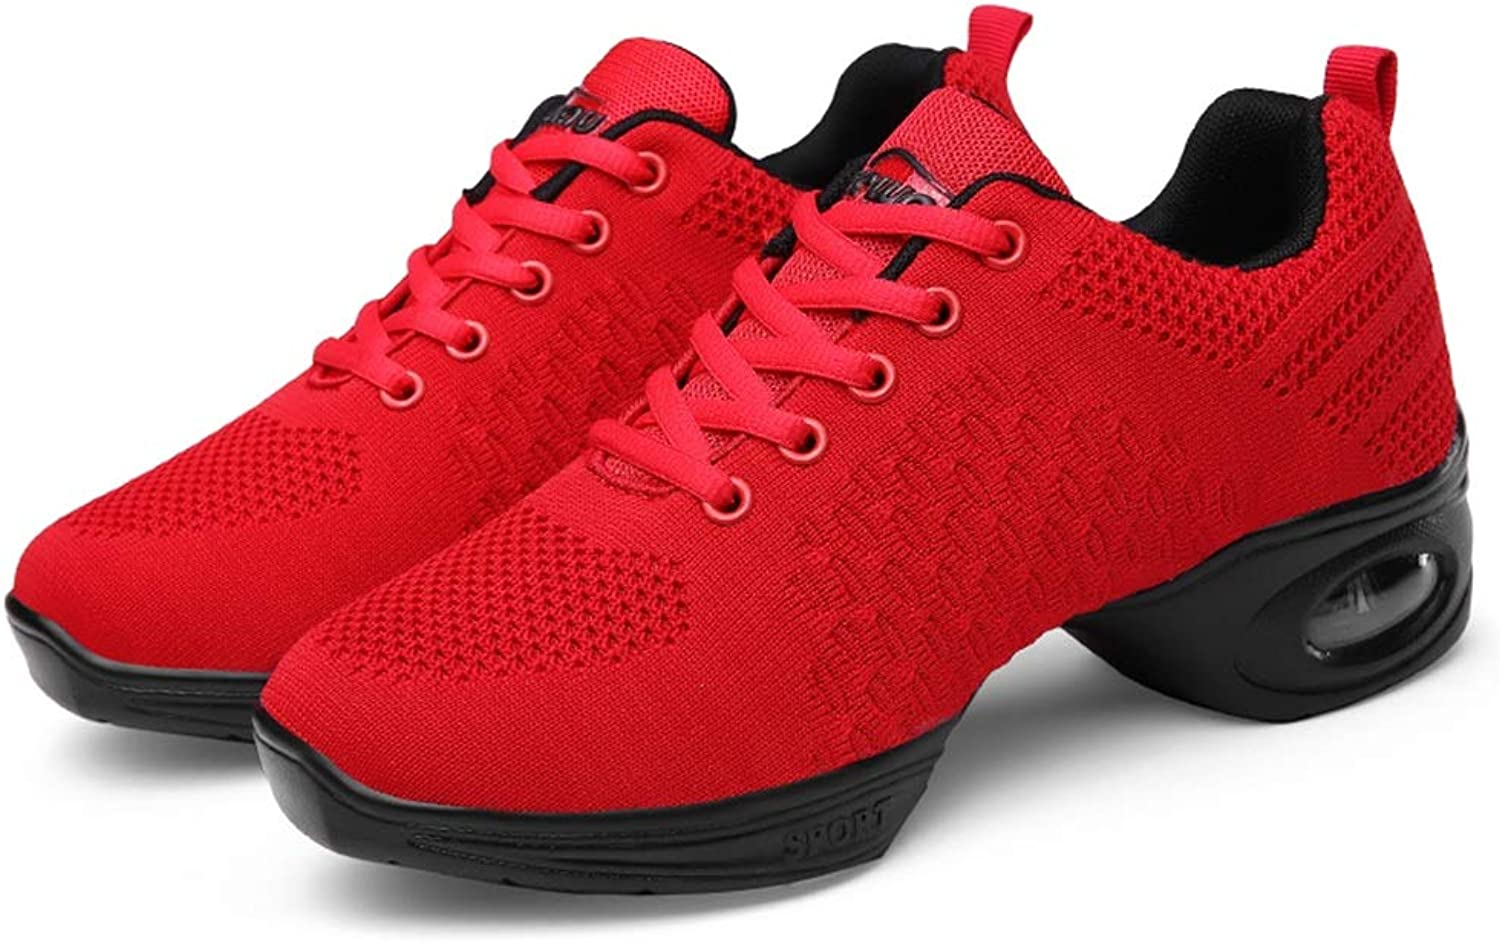 2019 Men Fashion Sneakers, Weave Vamp Anti-Slip Outsole Modern Ballroom shoes for Ladies Women's Lace Up Professional Dance shoes (color   Red, Size   5 D(M) US)